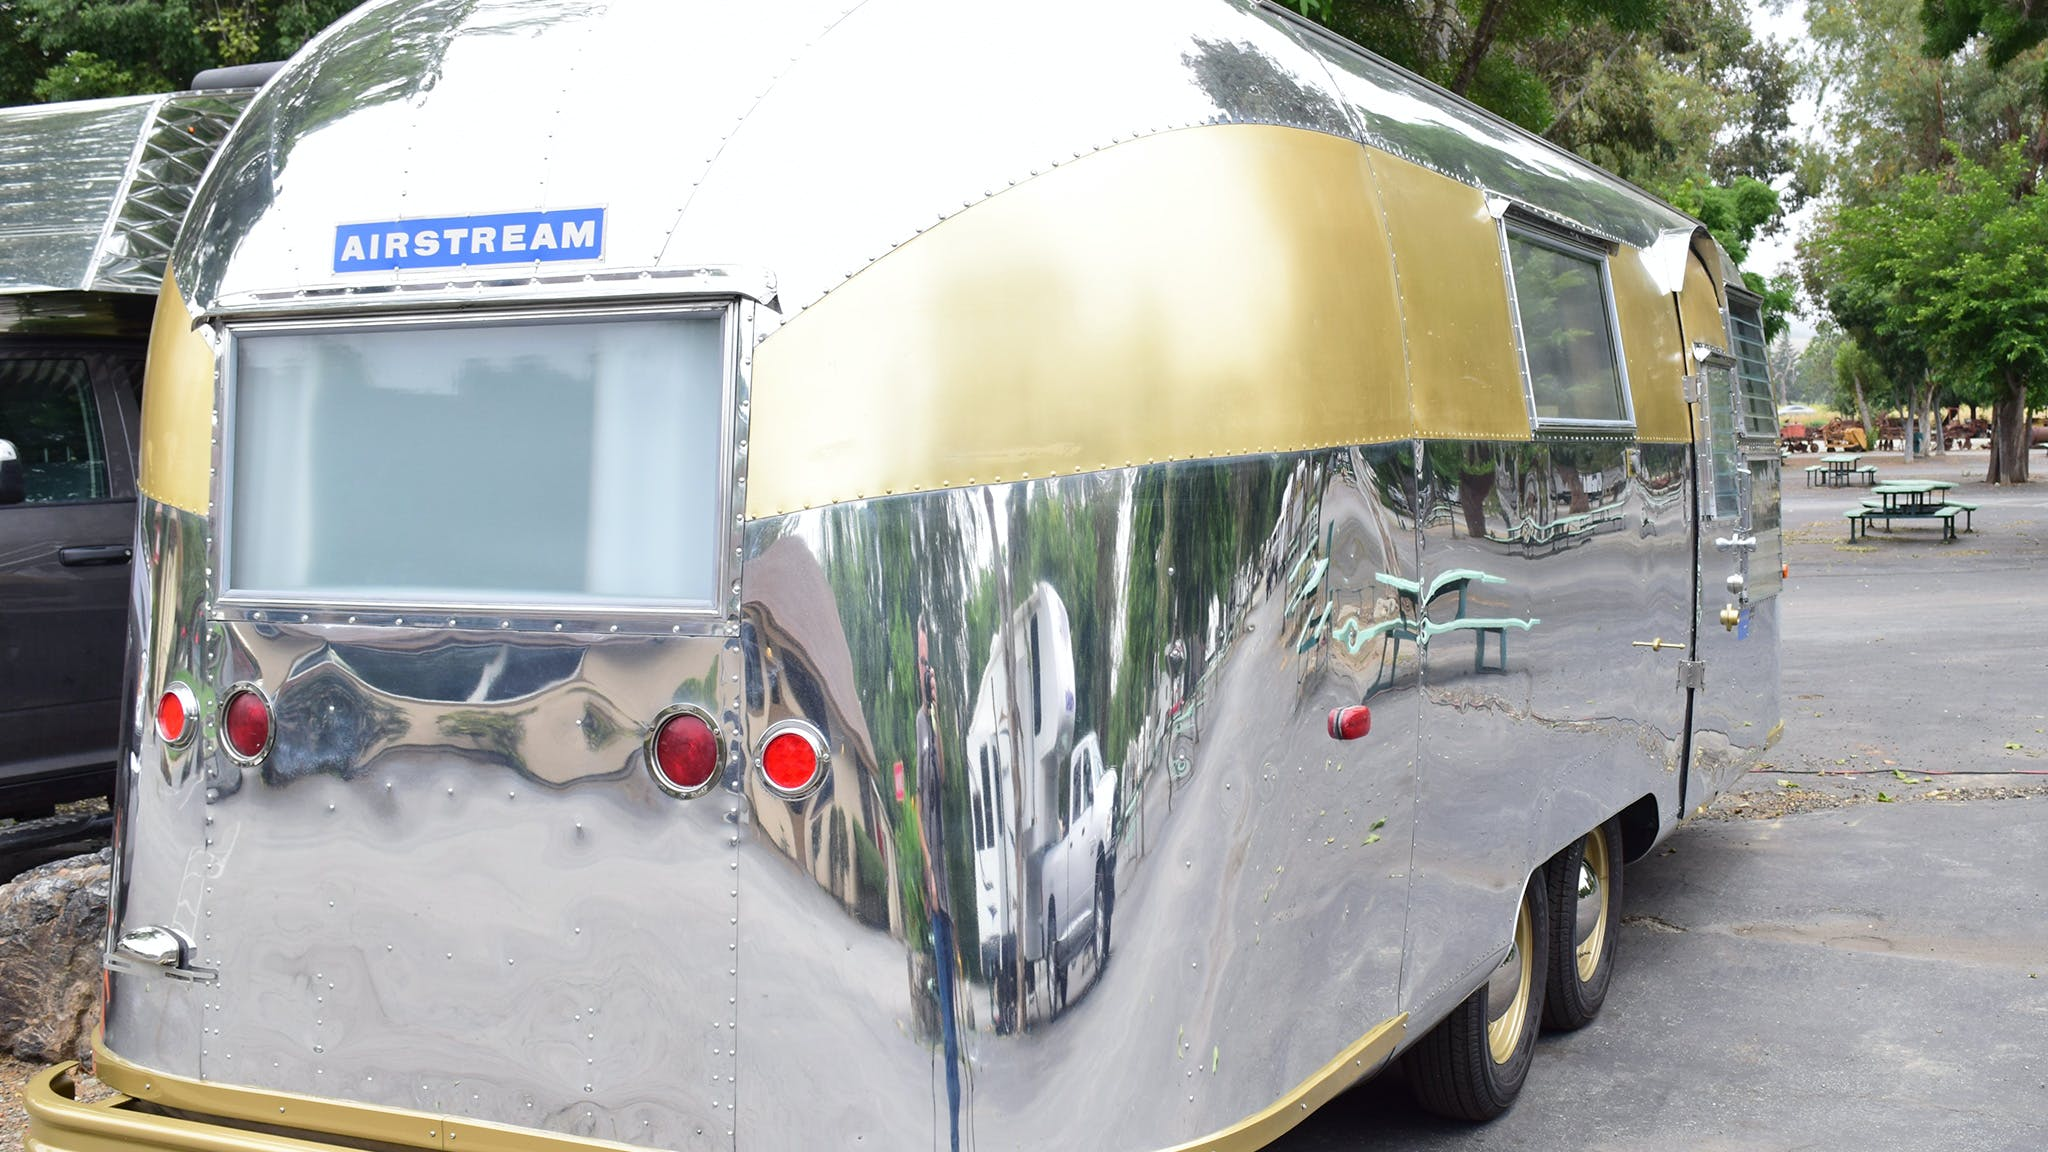 Rallying-In-A-Vintage-Airstream-Gold-blog-feature-desktop